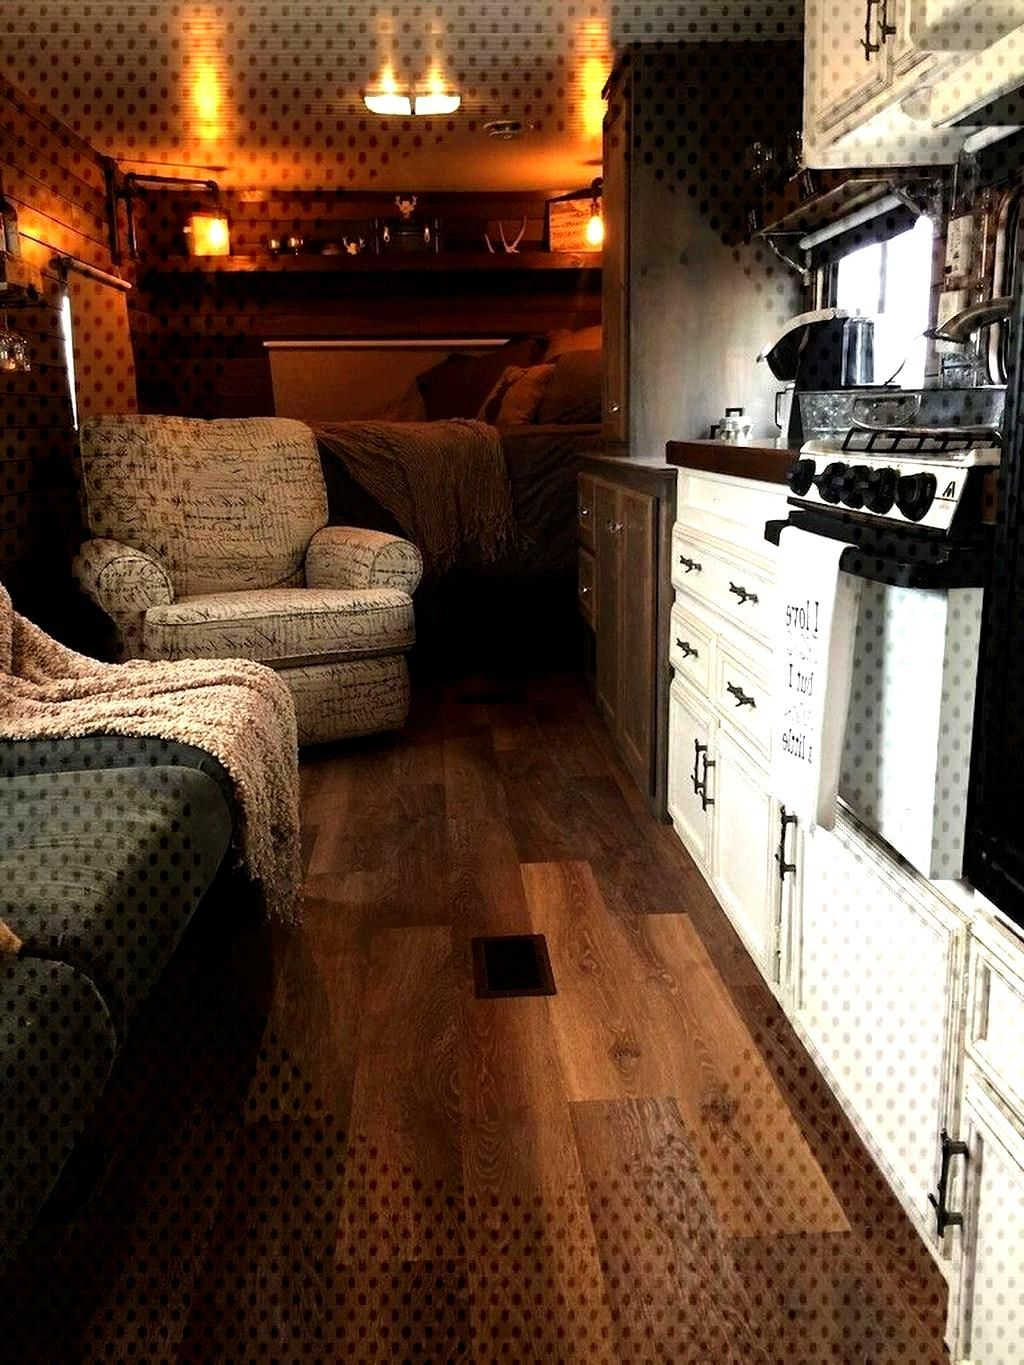 20+ Amazing Travel Trailers Remodel Rv Living Ideas - COODECOR - 20+ Amazing Travel Trailers Remod